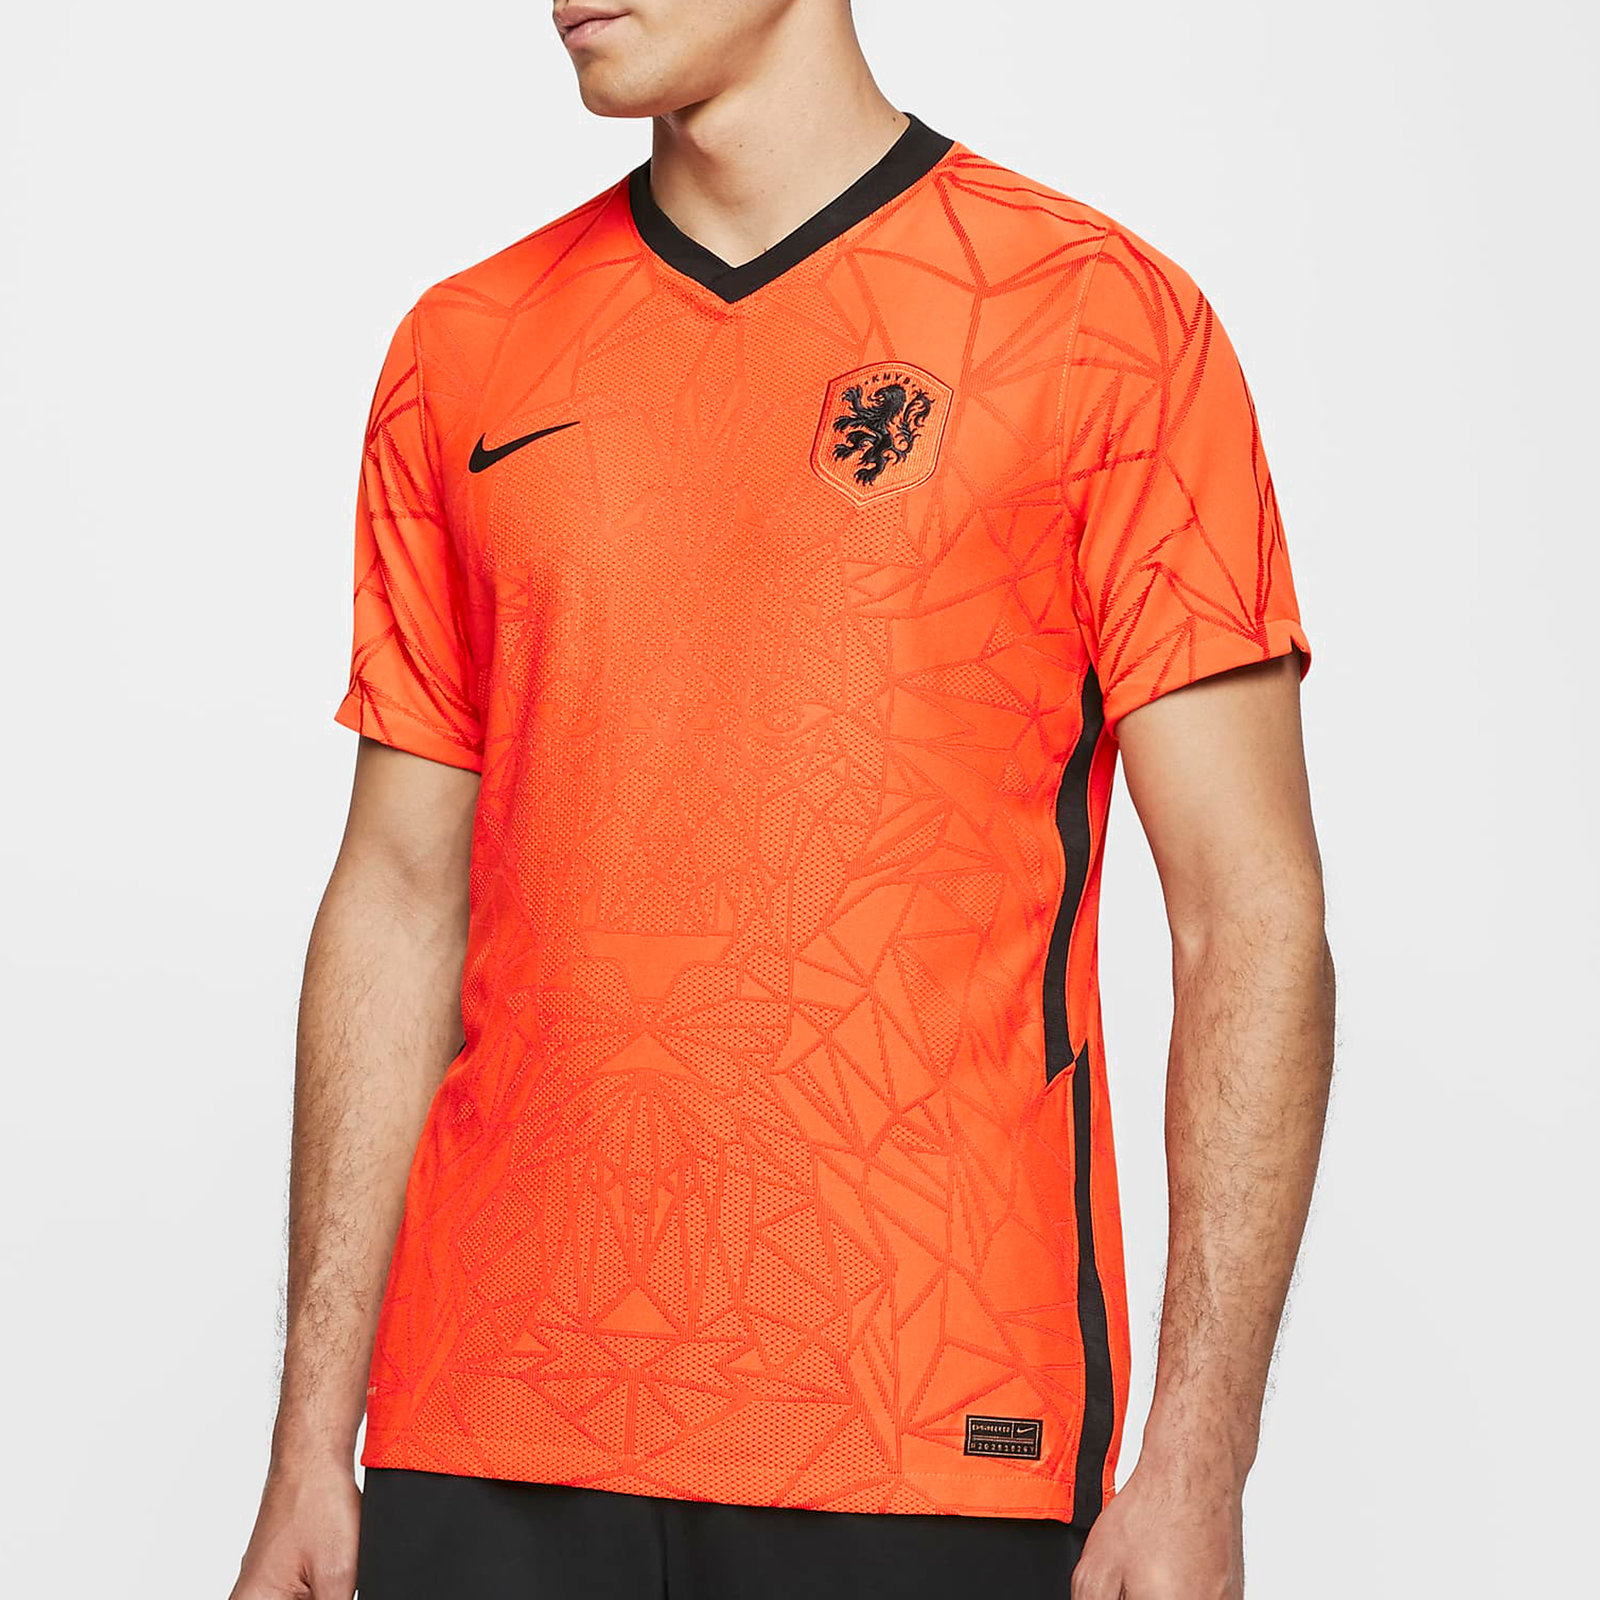 Holland 2020 Home Authentic Match Football Shirt